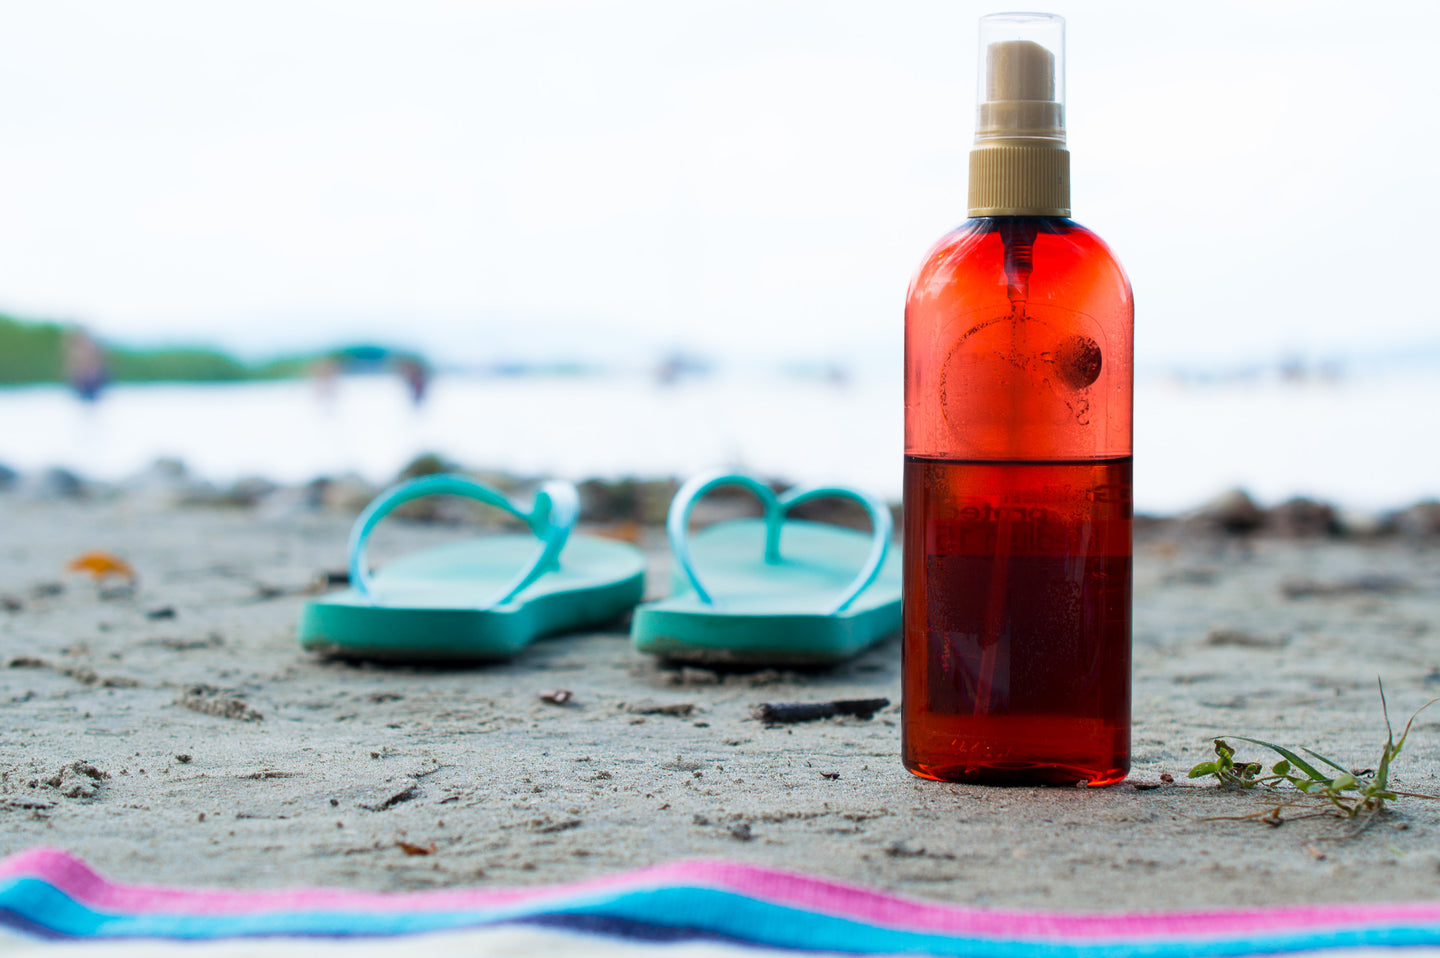 On February 21st 2019, The U.S. Food and Drug Administration issued a proposed rule that would update regulatory requirements for most sunscreen products in the United States